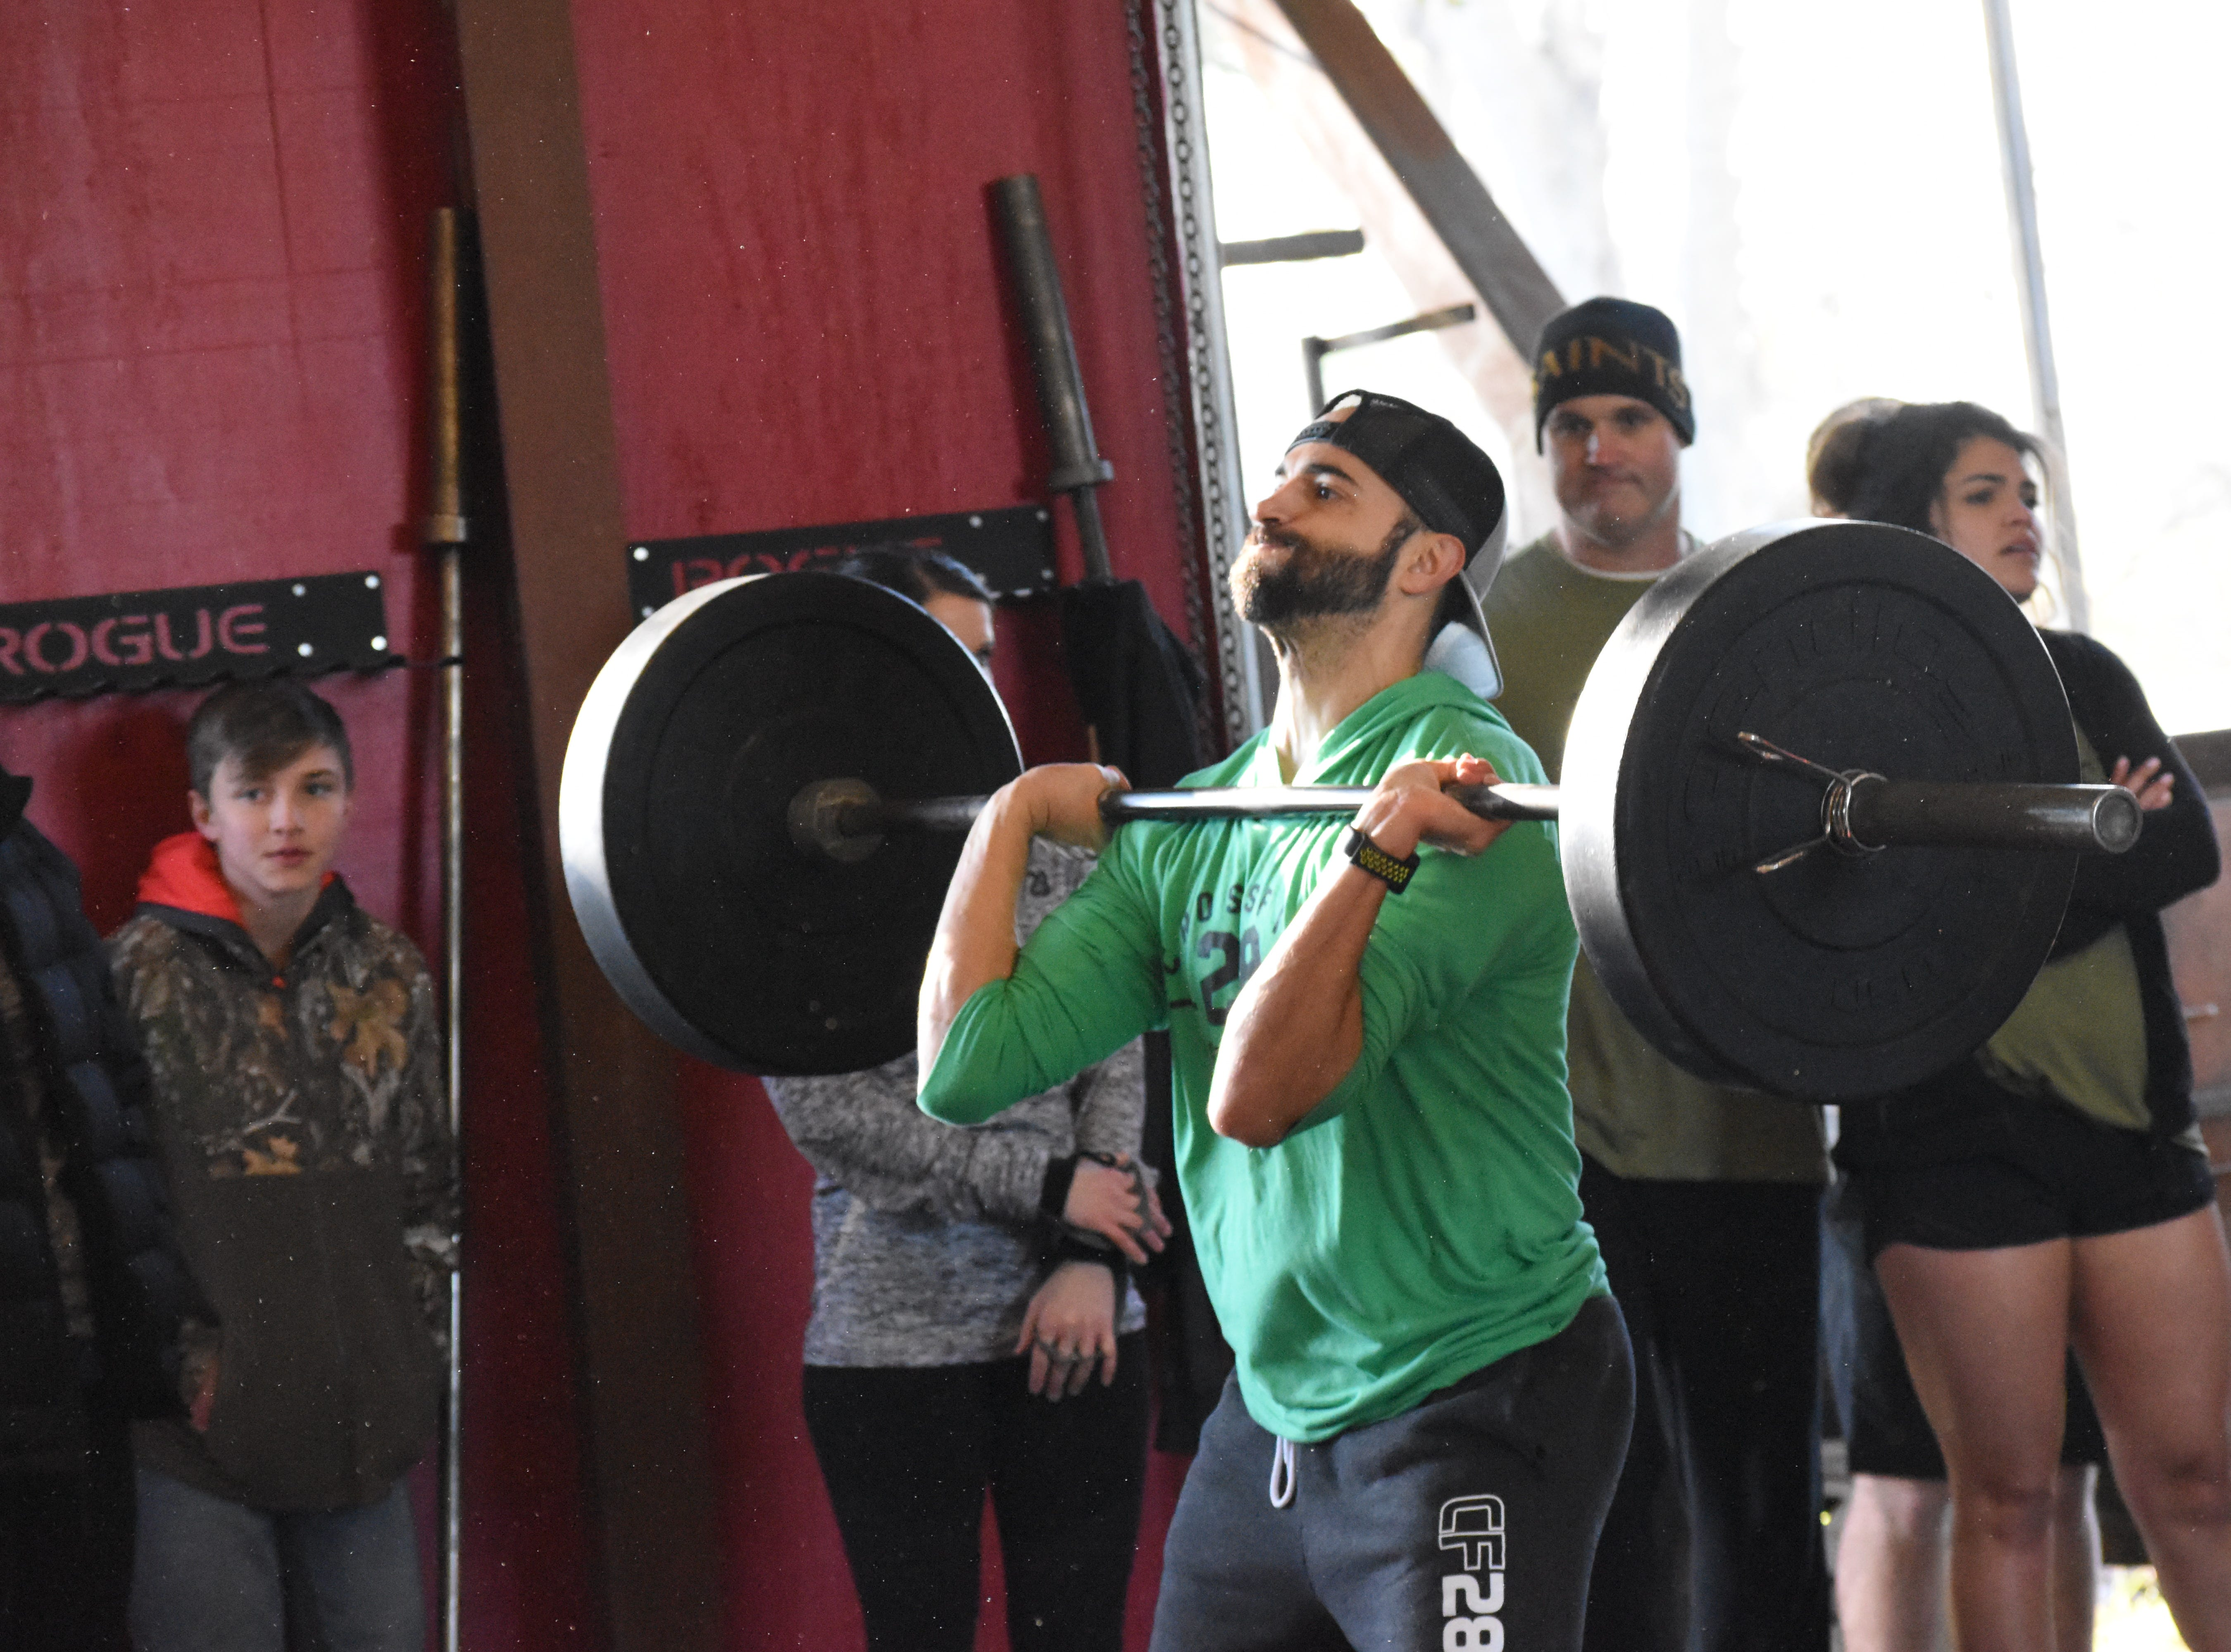 Twenty teams from six CrossFit affiliates in the area competed in the Iron Boot Classic  Saturday, Jan. 26, 2019 at the Iron Boot, formerly CrossFit Alexandria. Each team consisted of two men and two women who competed in five heats throuighout the day. Some of the exercises they performed were classic workouts such as deadlifts, burppees, wall balls and thrusters. William Albritton, owner of Iron Boot, said the competition involved the classic movements so everyone who works out could participate.